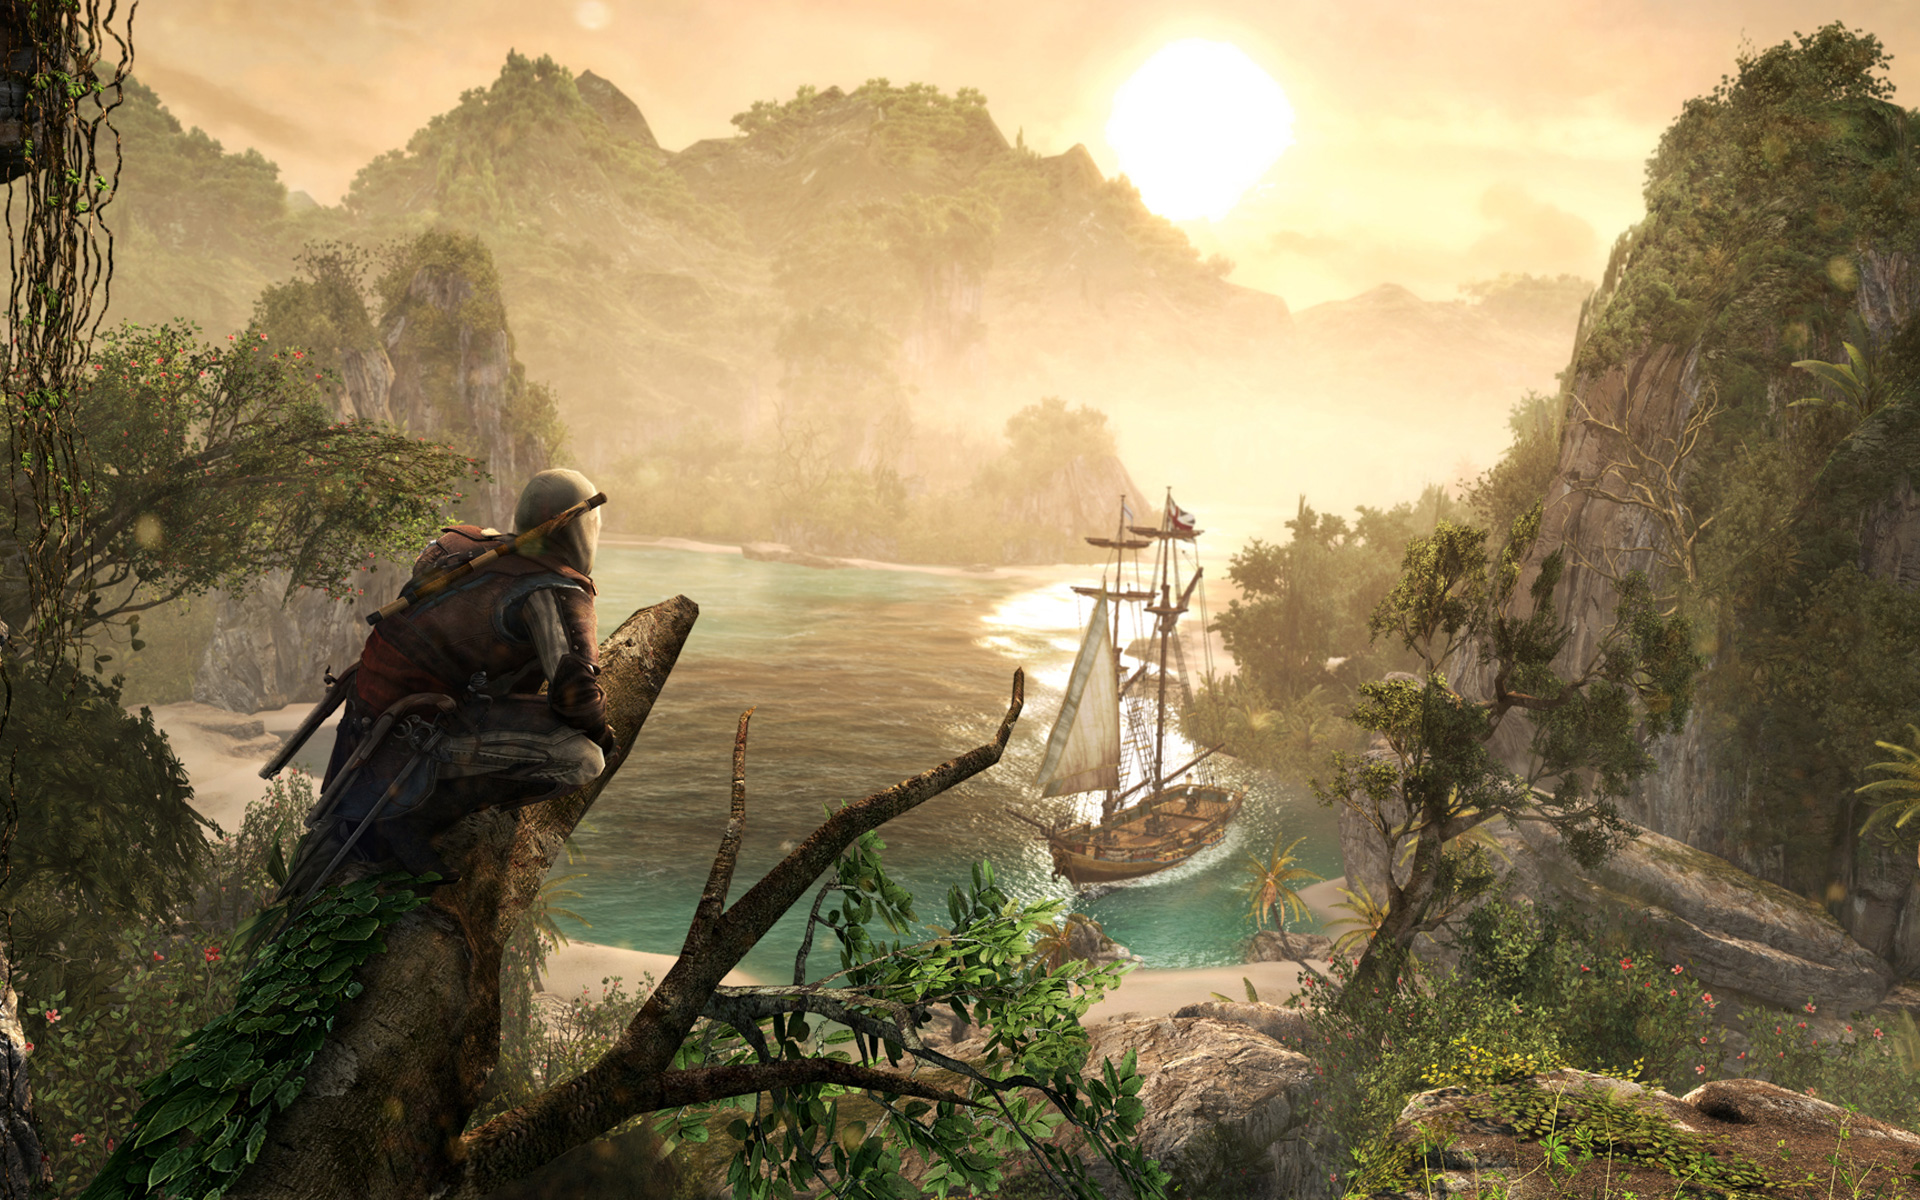 Free Assassin's Creed IV: Black Flag Wallpaper in 1920x1200